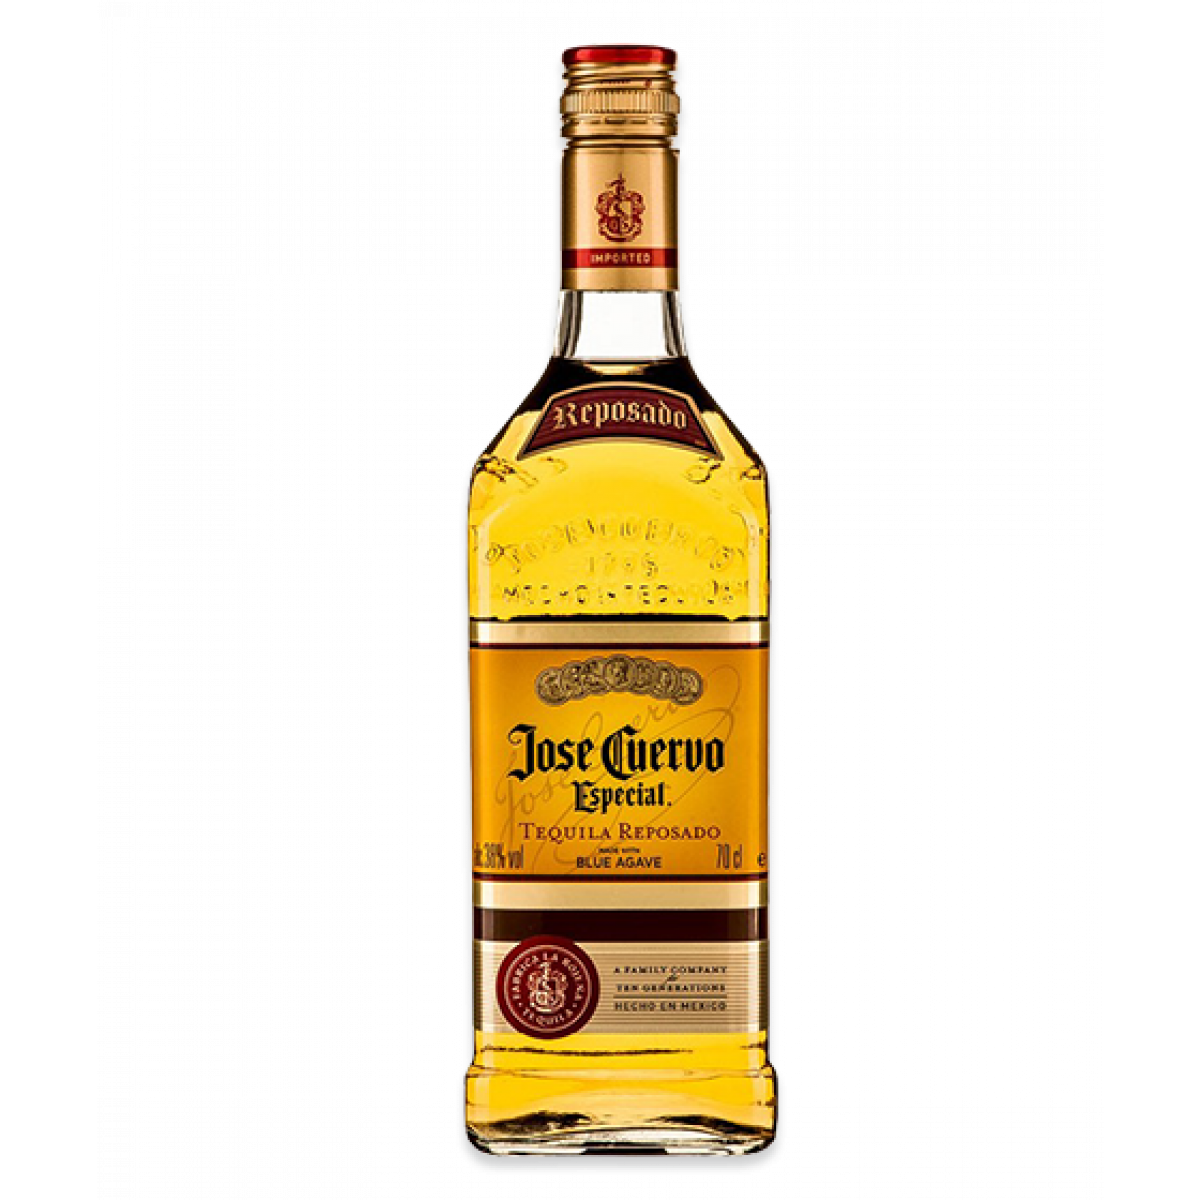 Tequila PNG images free download.